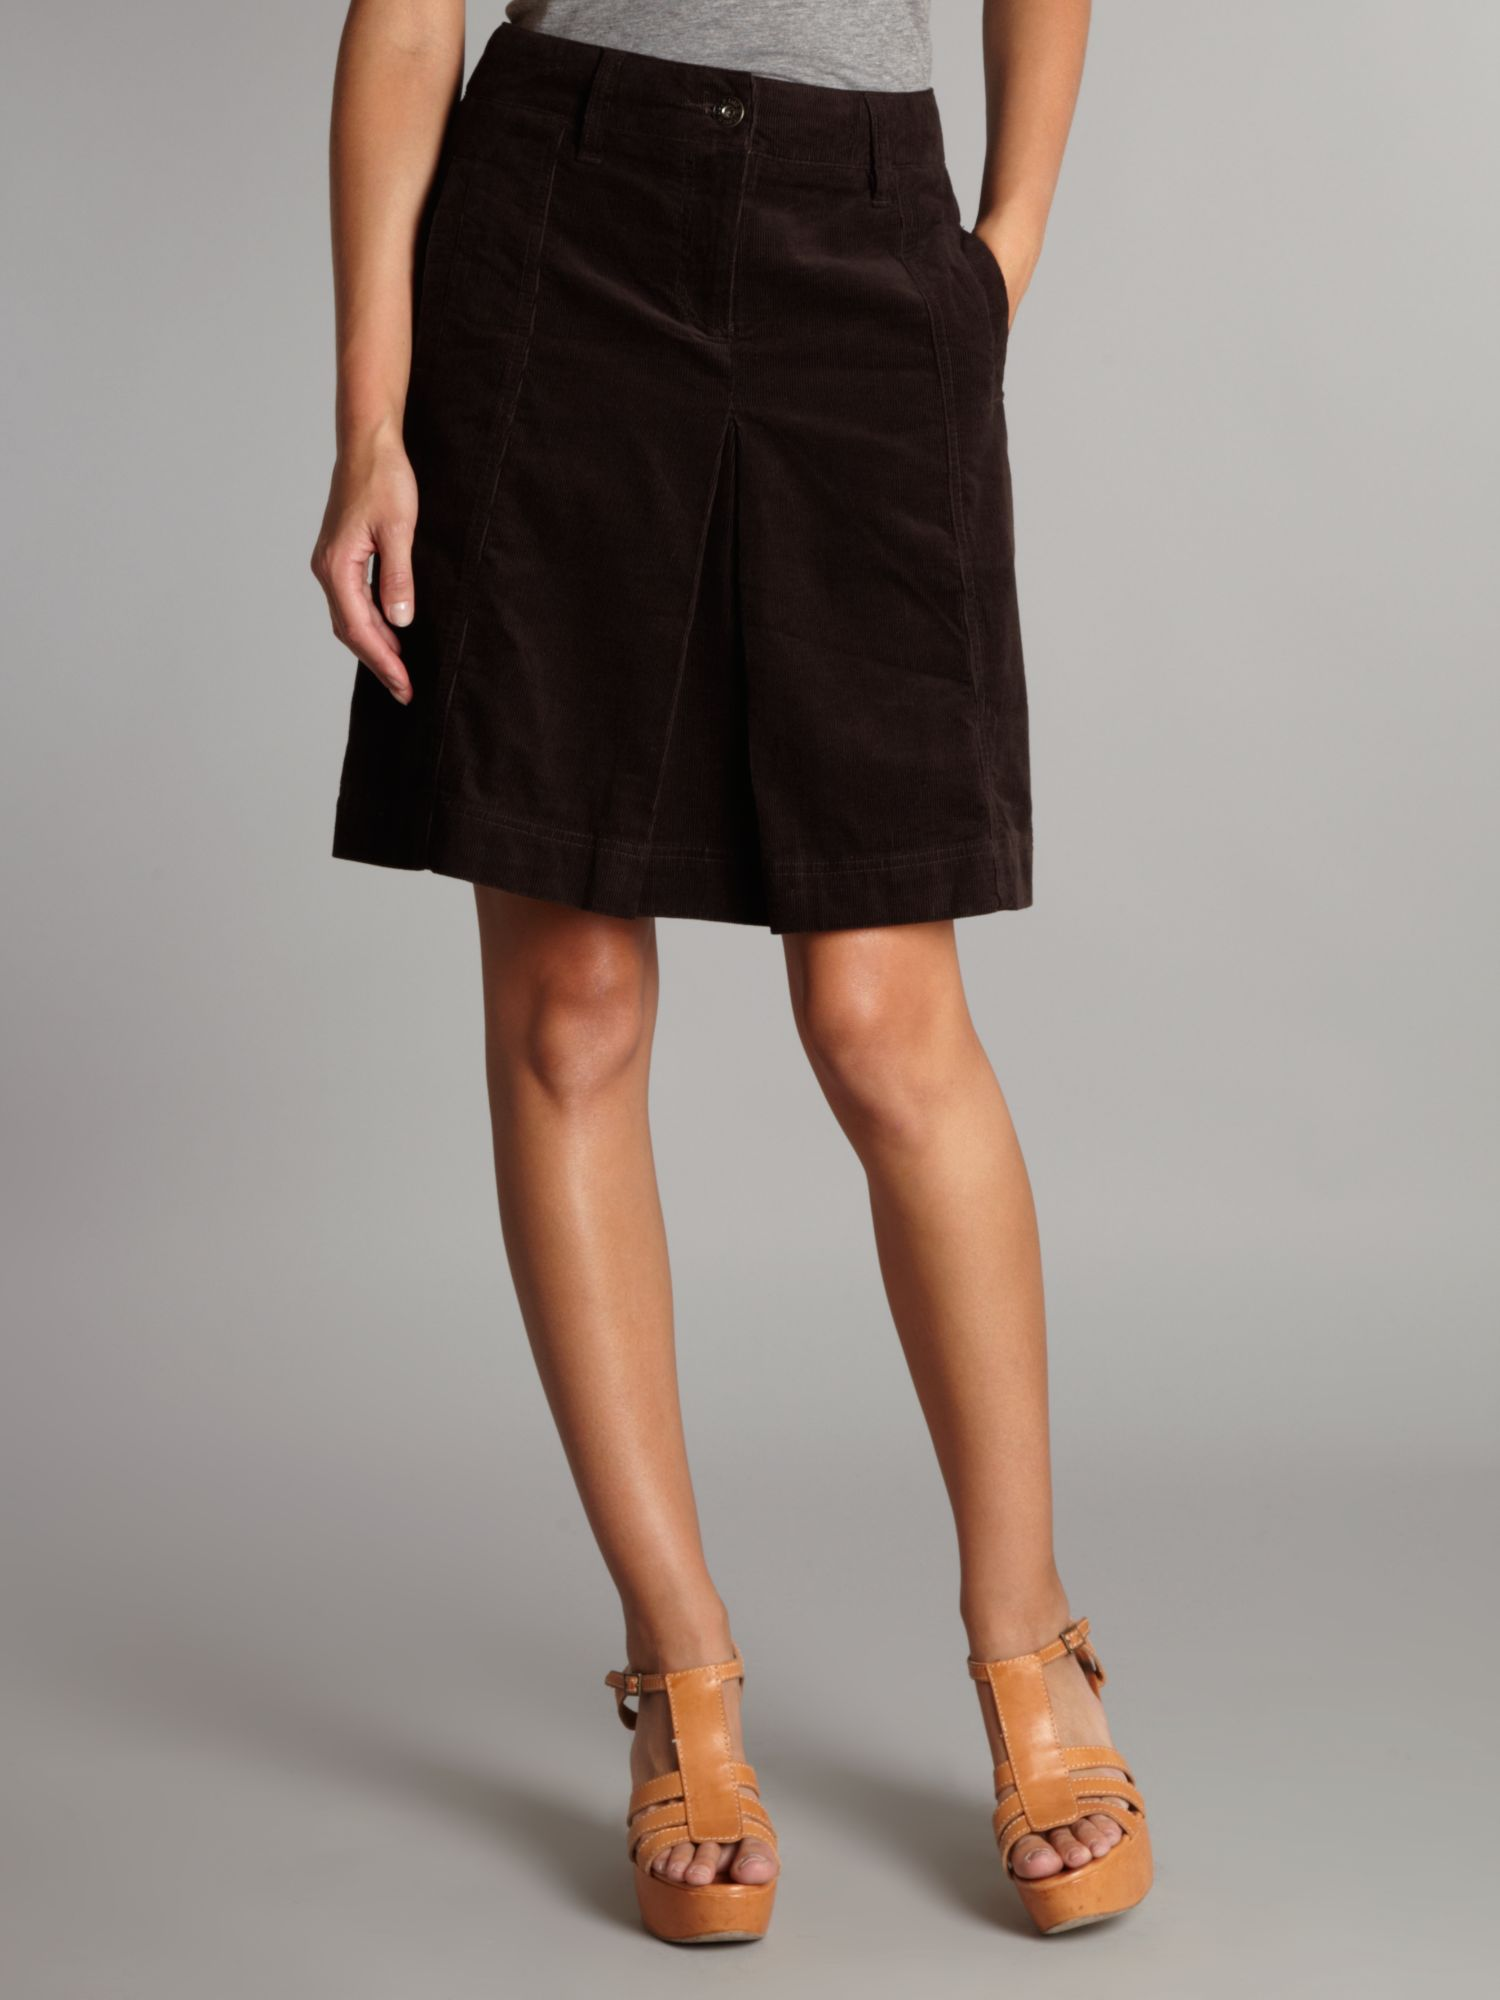 Dickins & jones Cord A Line Skirt in Black | Lyst